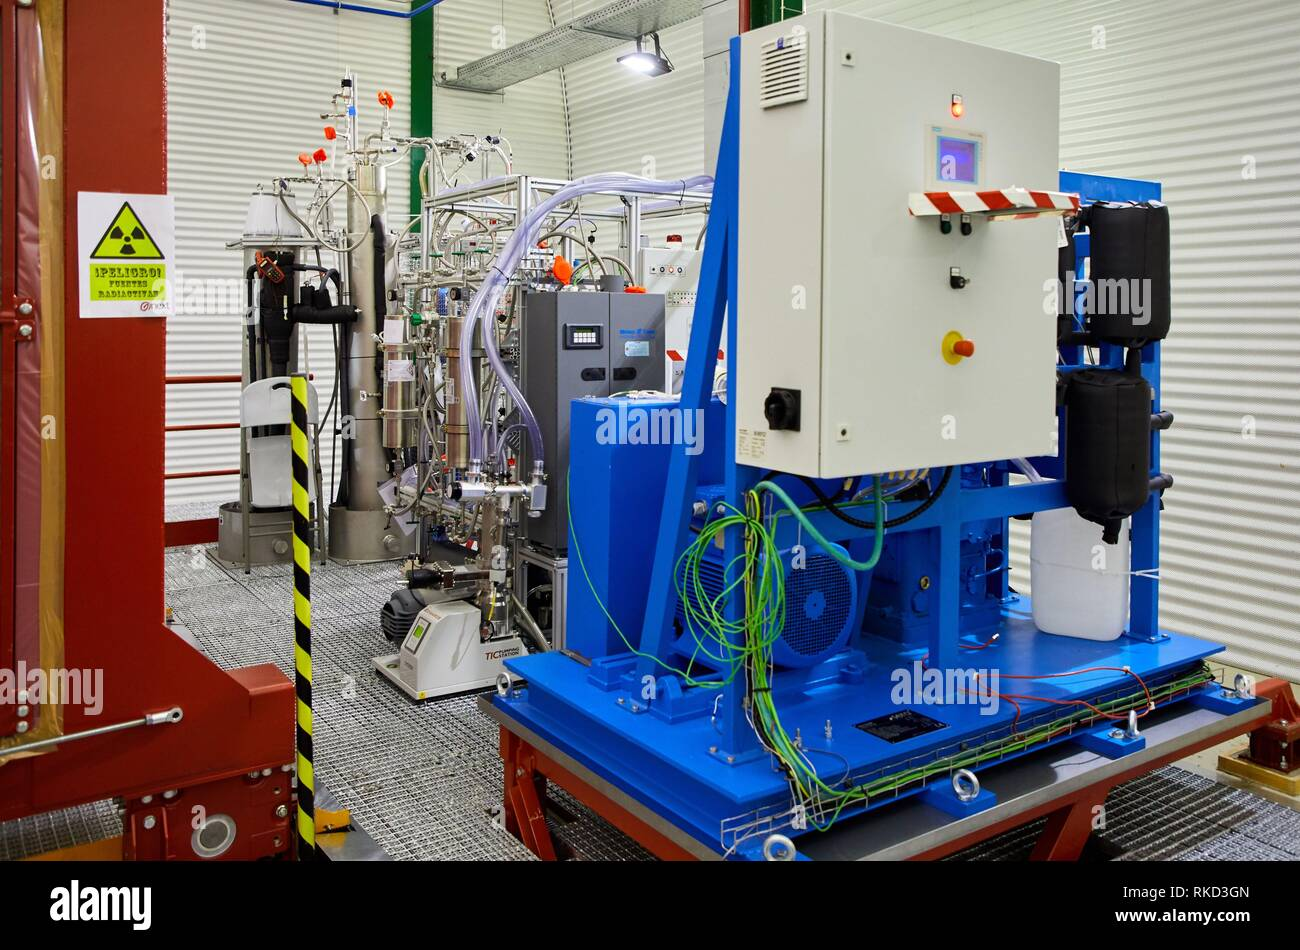 Xenon Stock Photos & Xenon Stock Images - Alamy